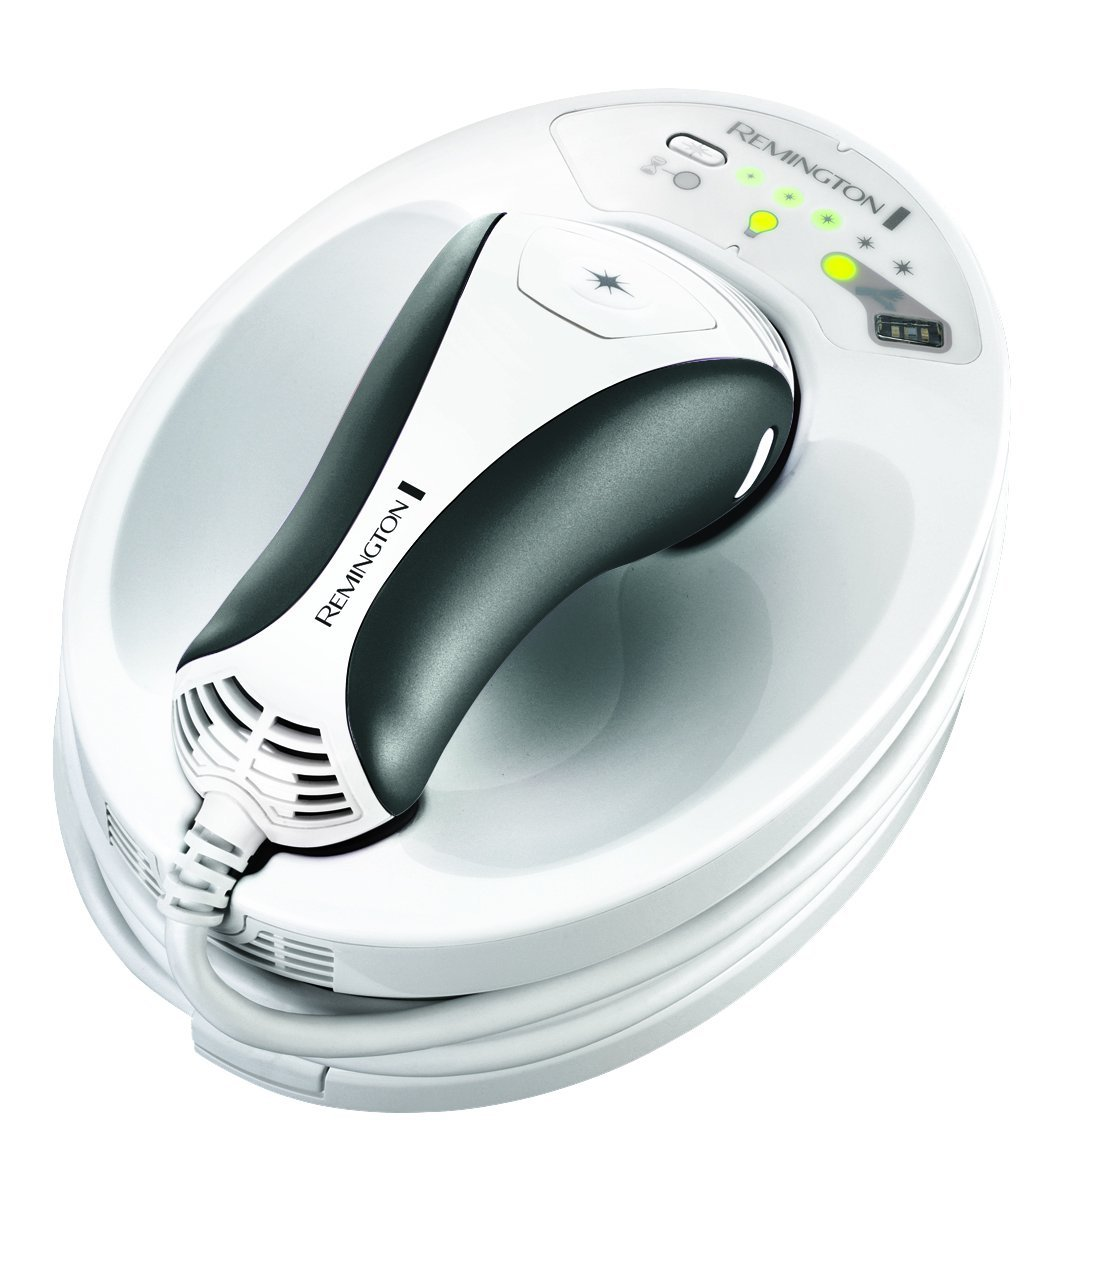 remington ipl6250 i-light essentiel avis